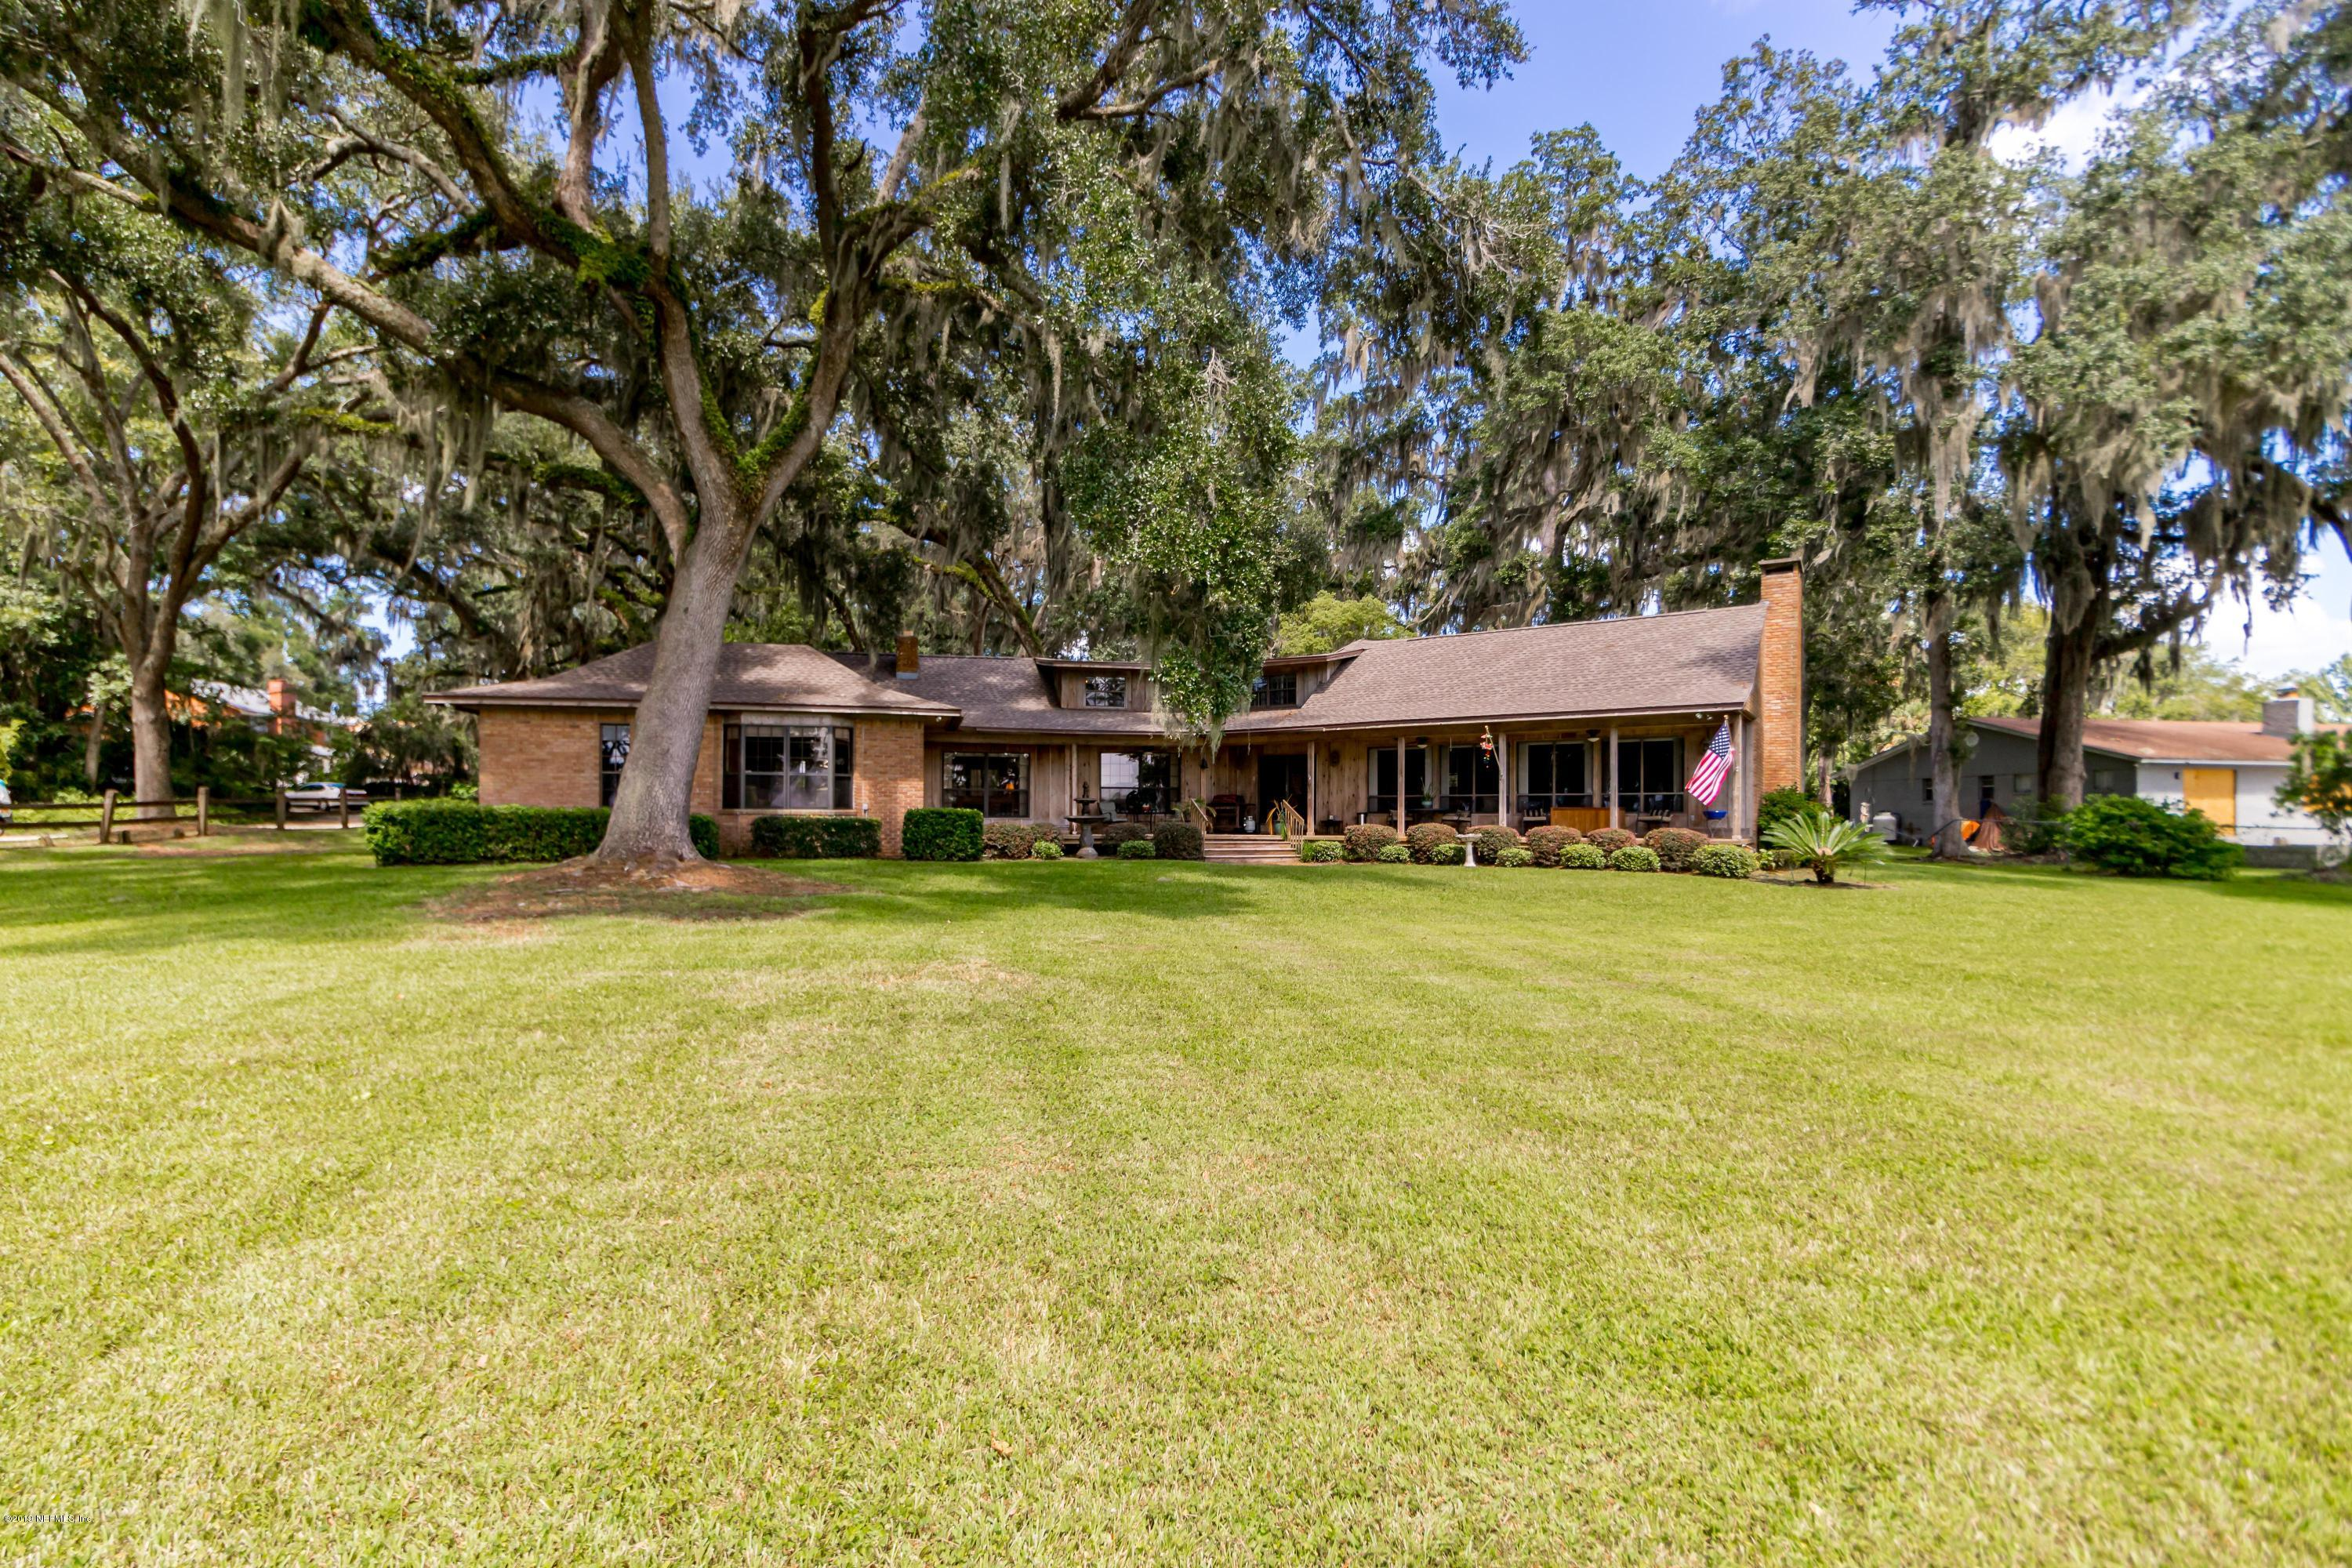 2475 DOGWOOD, ORANGE PARK, FLORIDA 32073, 5 Bedrooms Bedrooms, ,4 BathroomsBathrooms,Residential - single family,For sale,DOGWOOD,1020165